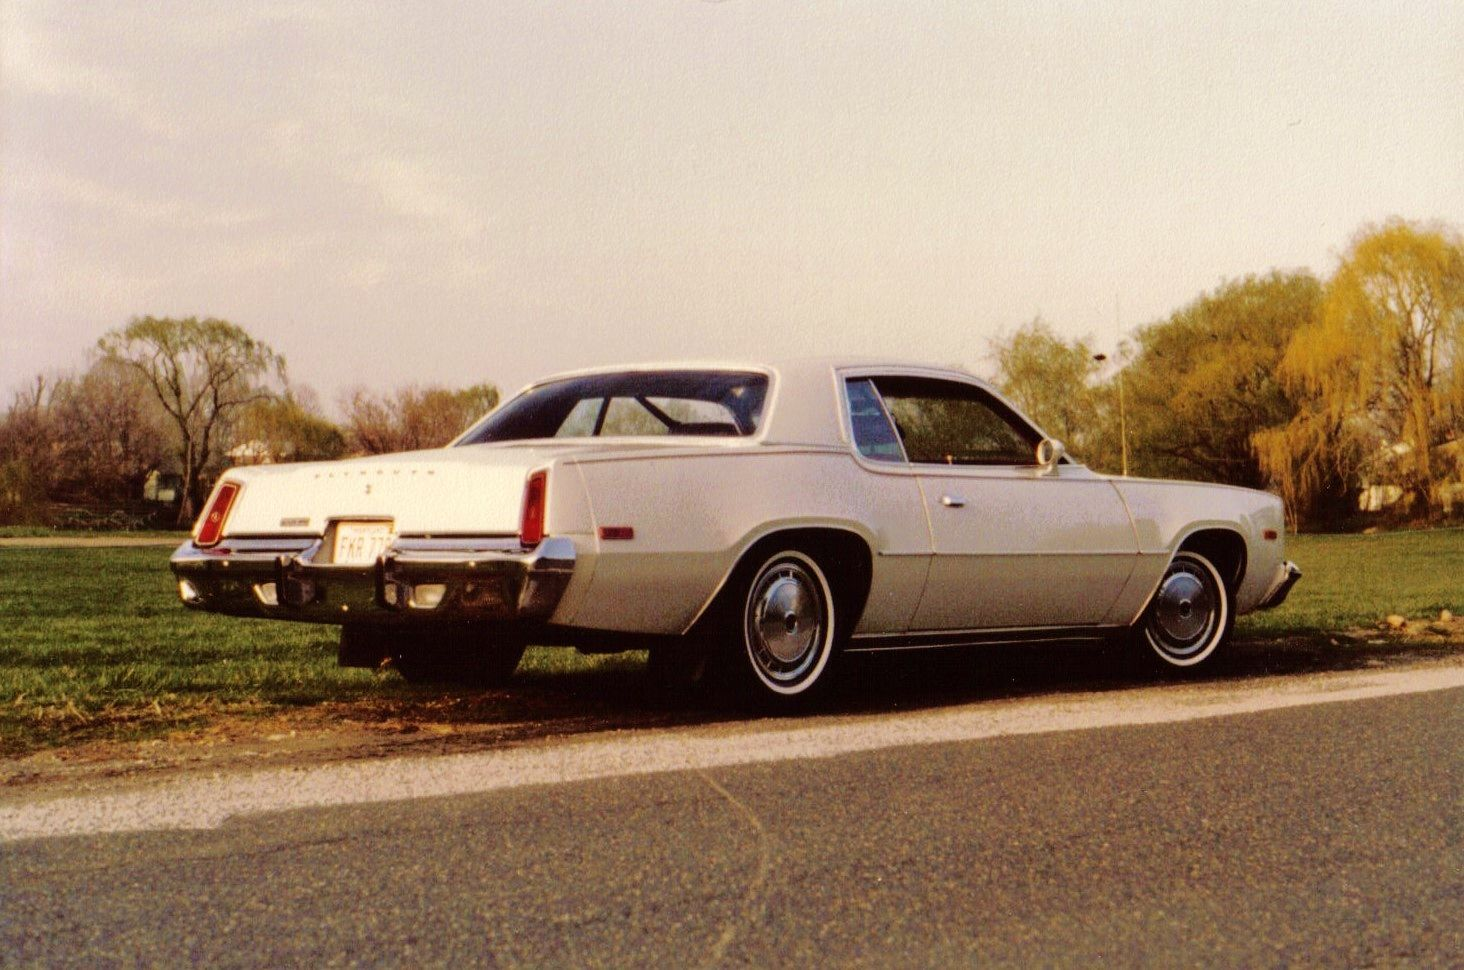 1978 Plymouth Fury Ii Purchased New In 1978 With Red Interior And White Vinyl Roof Plymouth Fury Vinyl Roofing Mopar